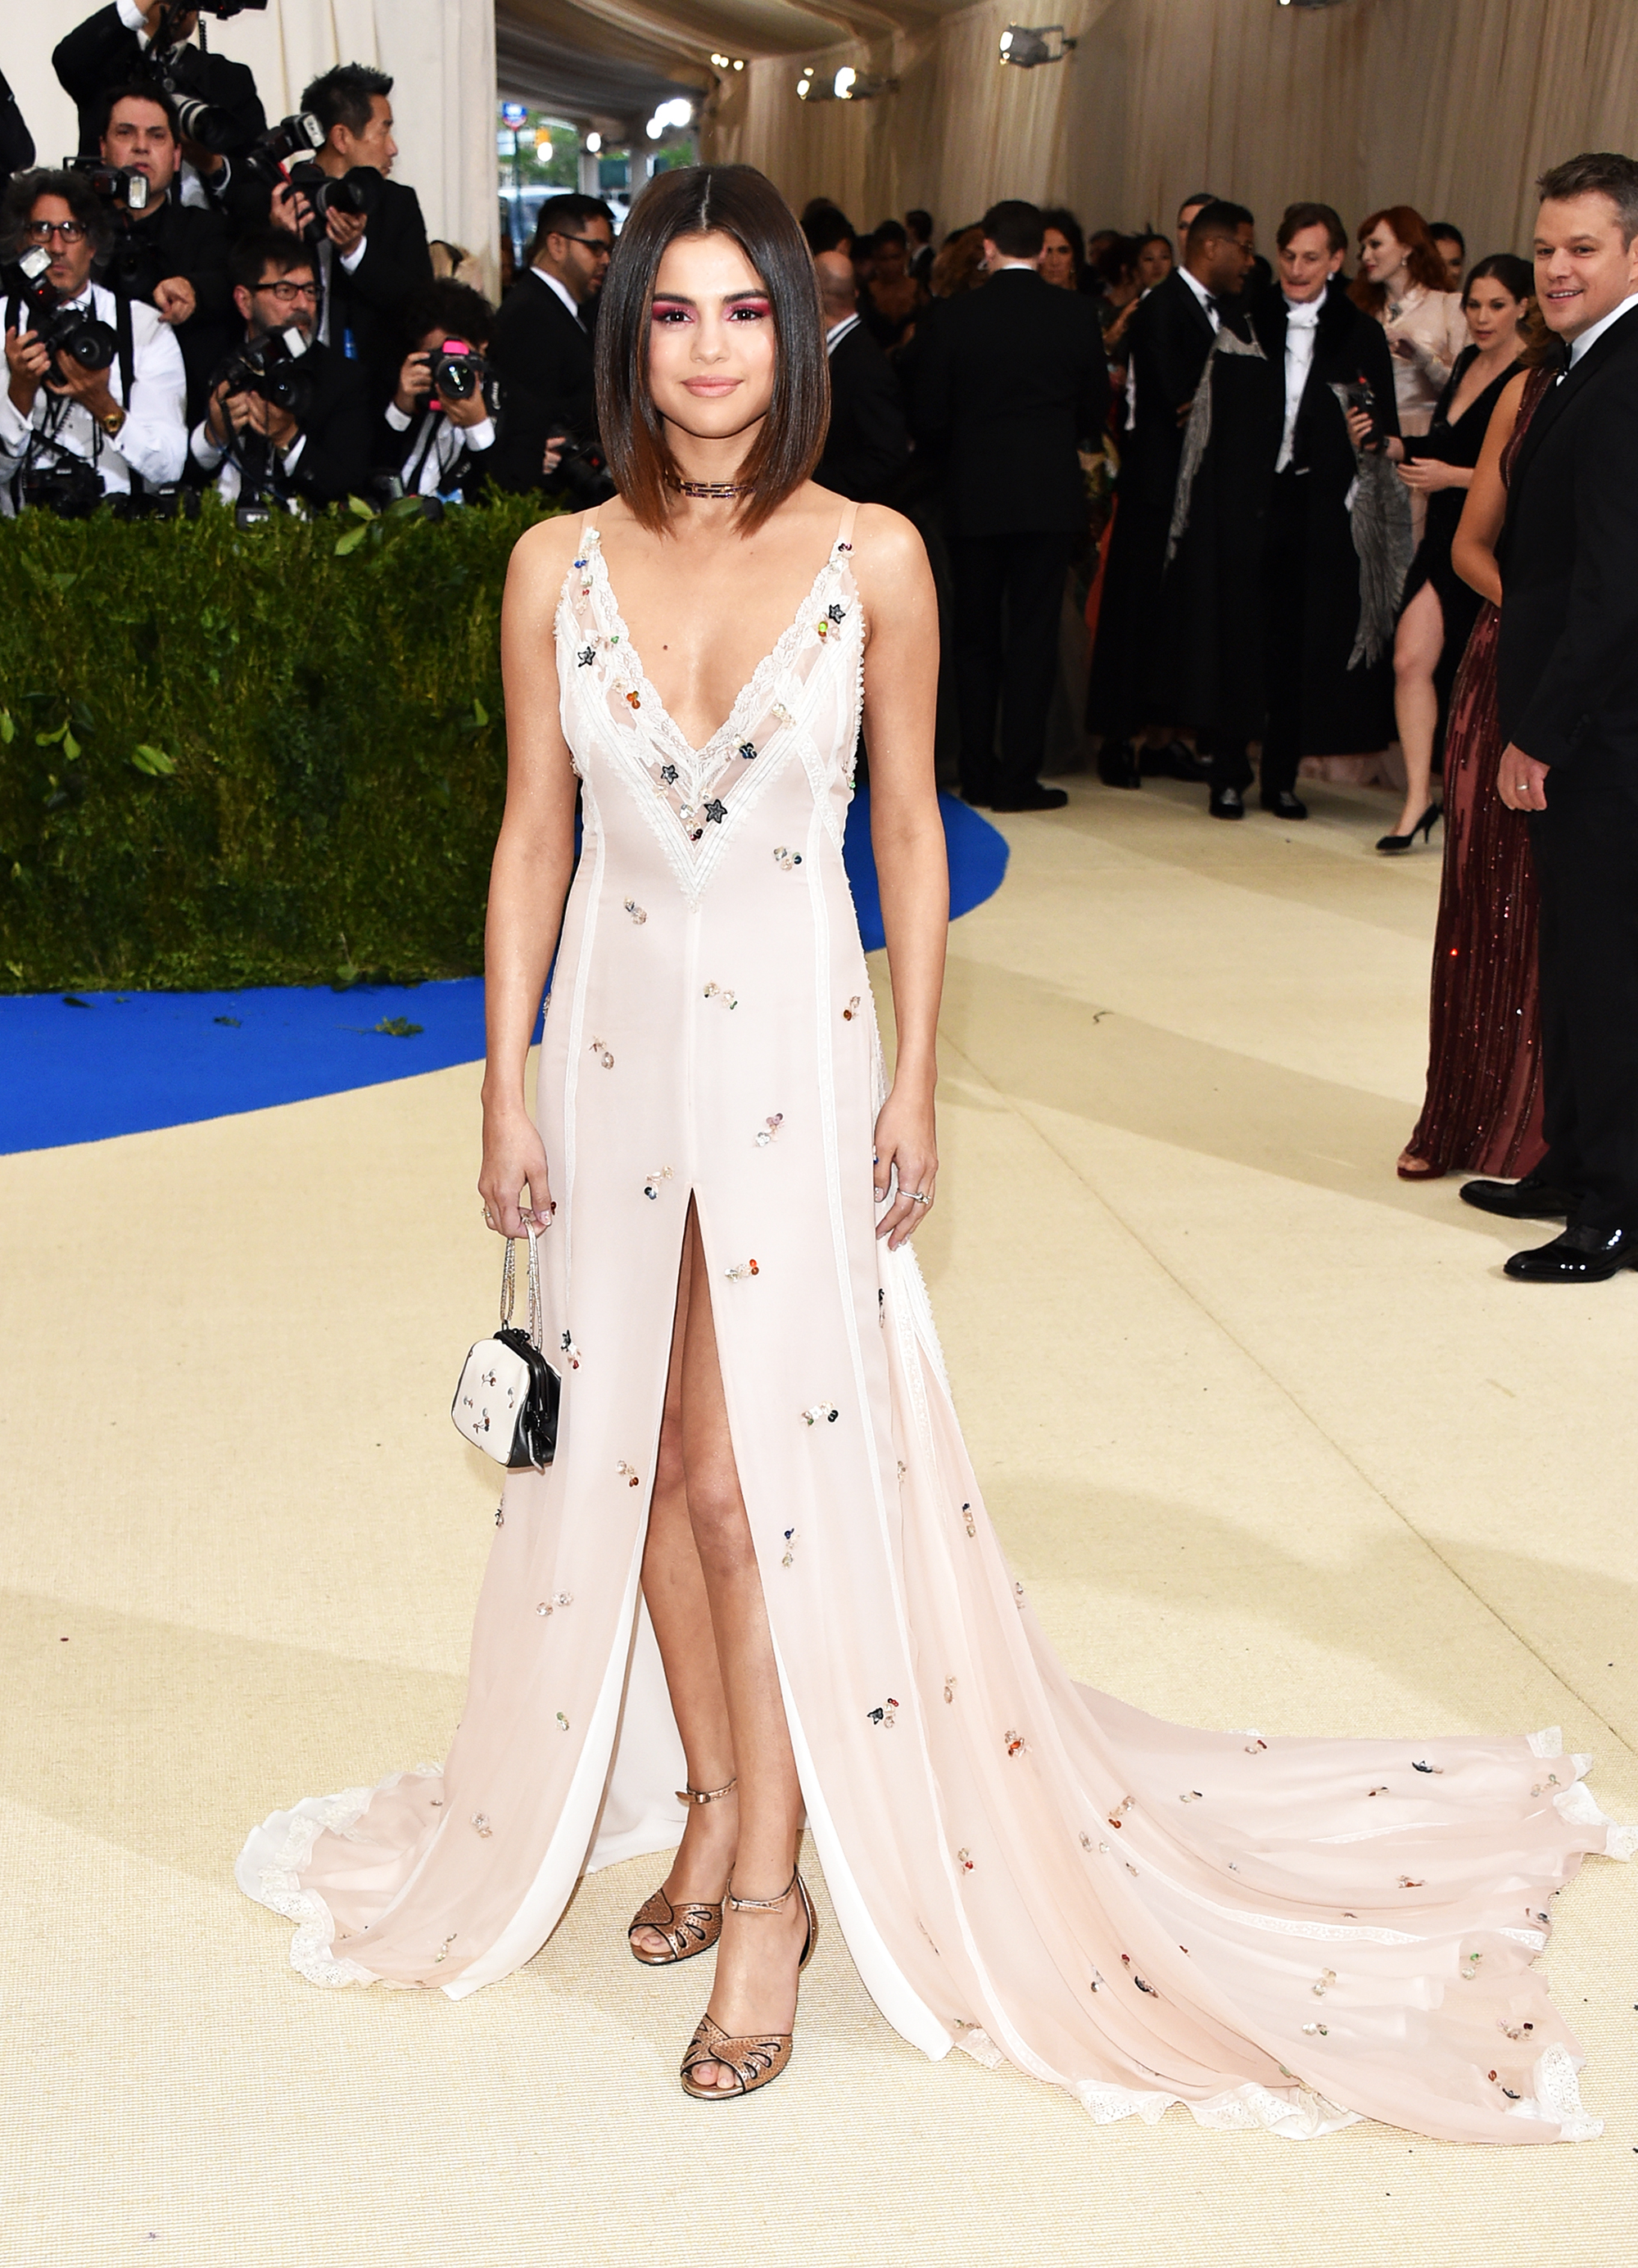 Selena Gomez attends The Metropolitan Museum of Art's Costume Institute benefit gala celebrating the opening of the Rei Kawakubo/Comme des Garçons: Art of the In-Between exhibition in New York City, on May 1, 2017.